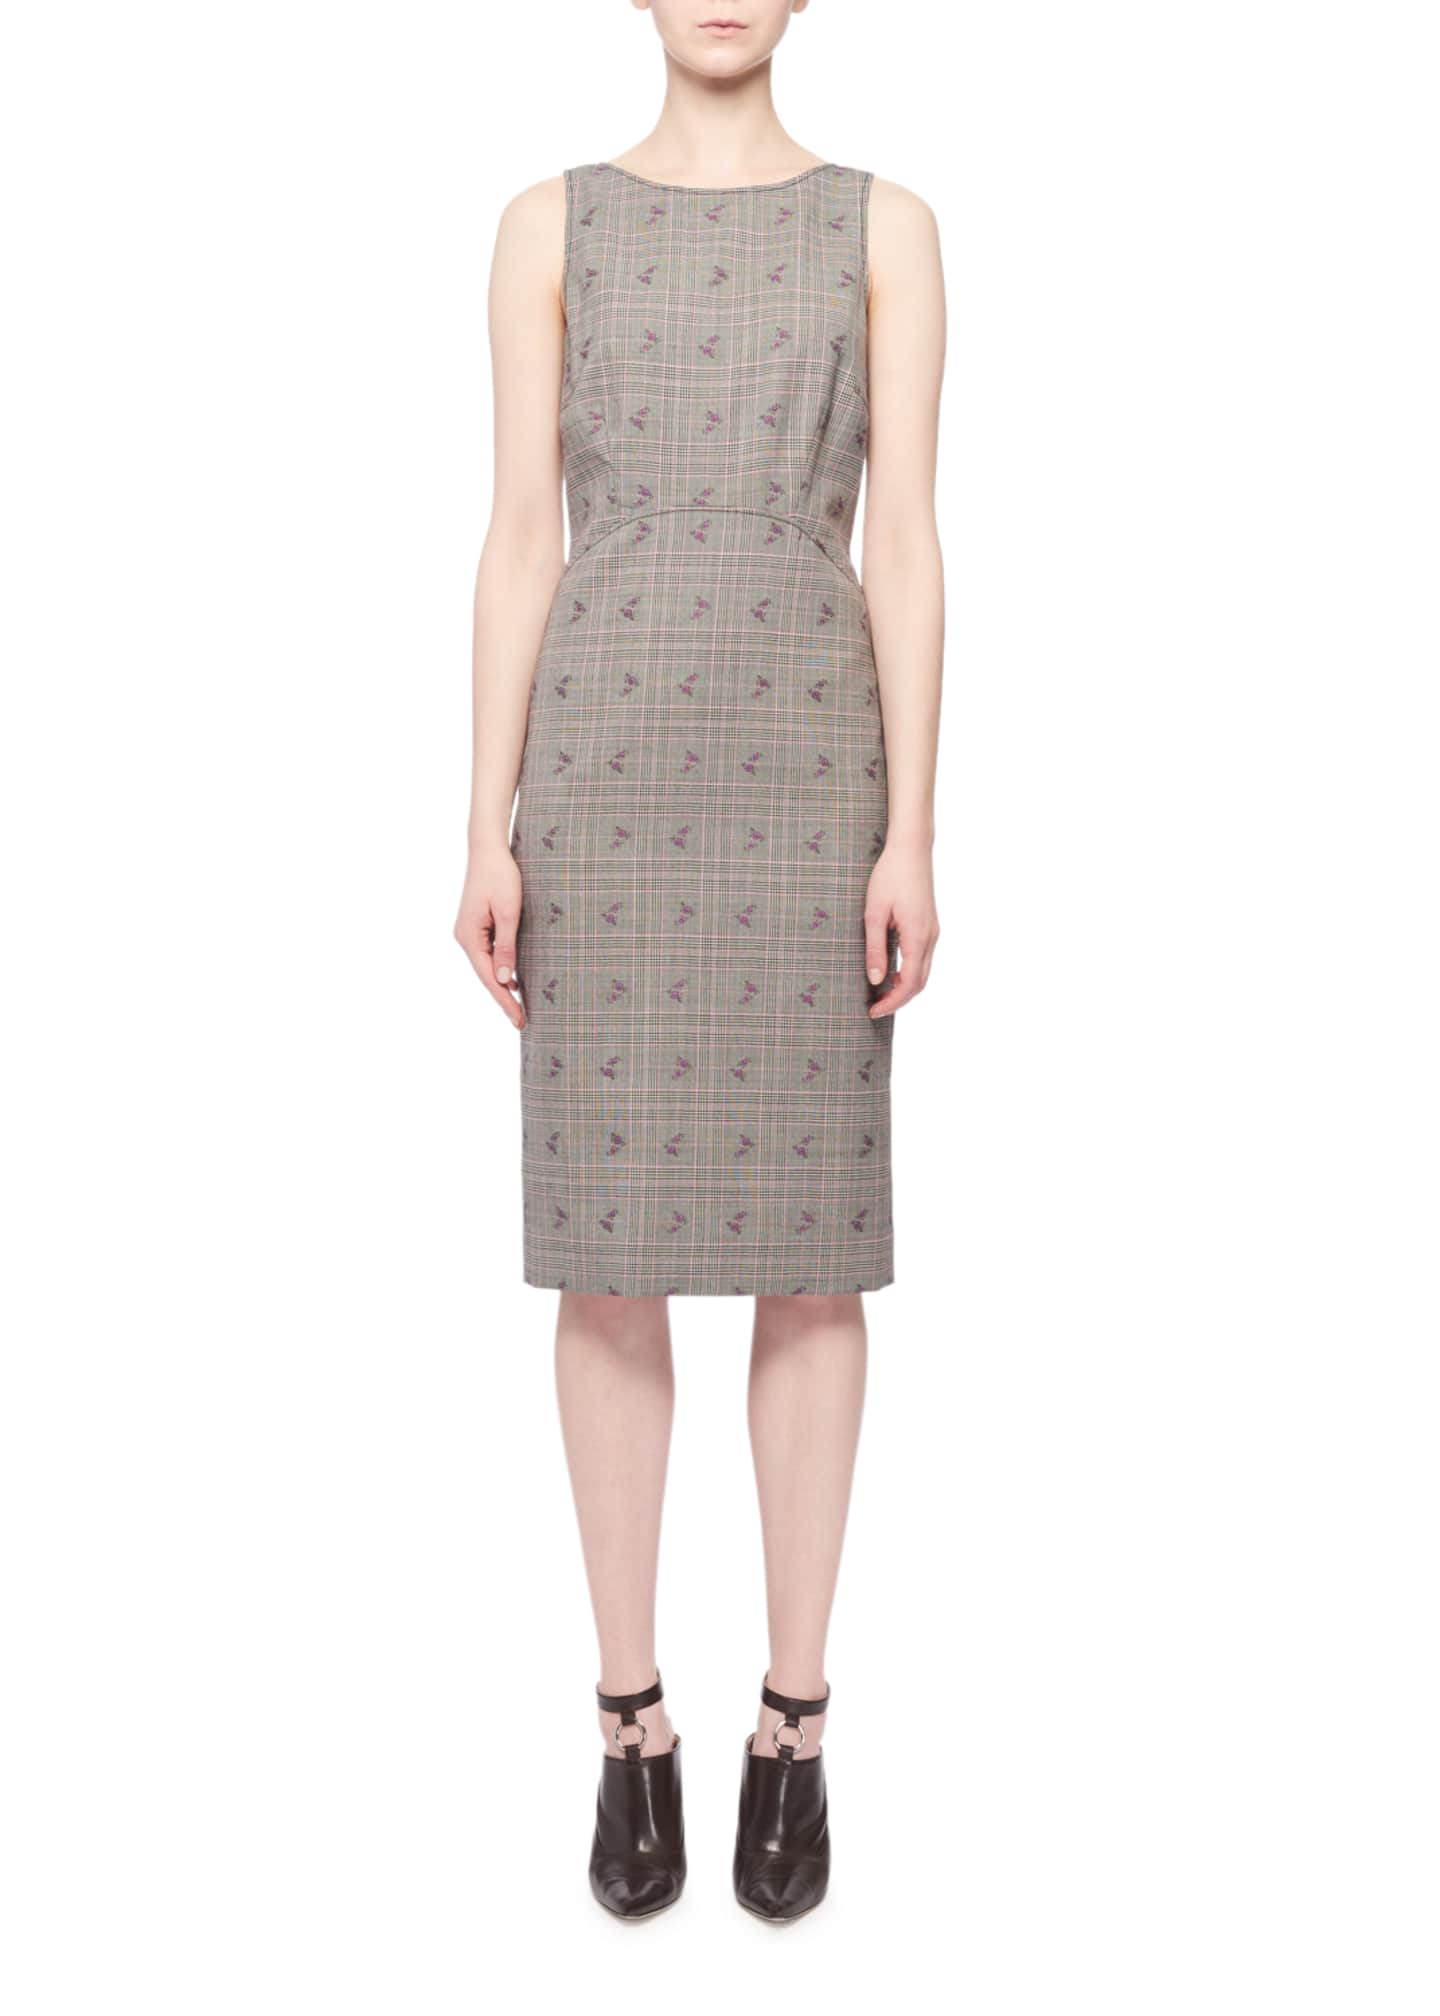 Altuzarra Sleeveless Floral-Embroidered Prince of Wales Sheath